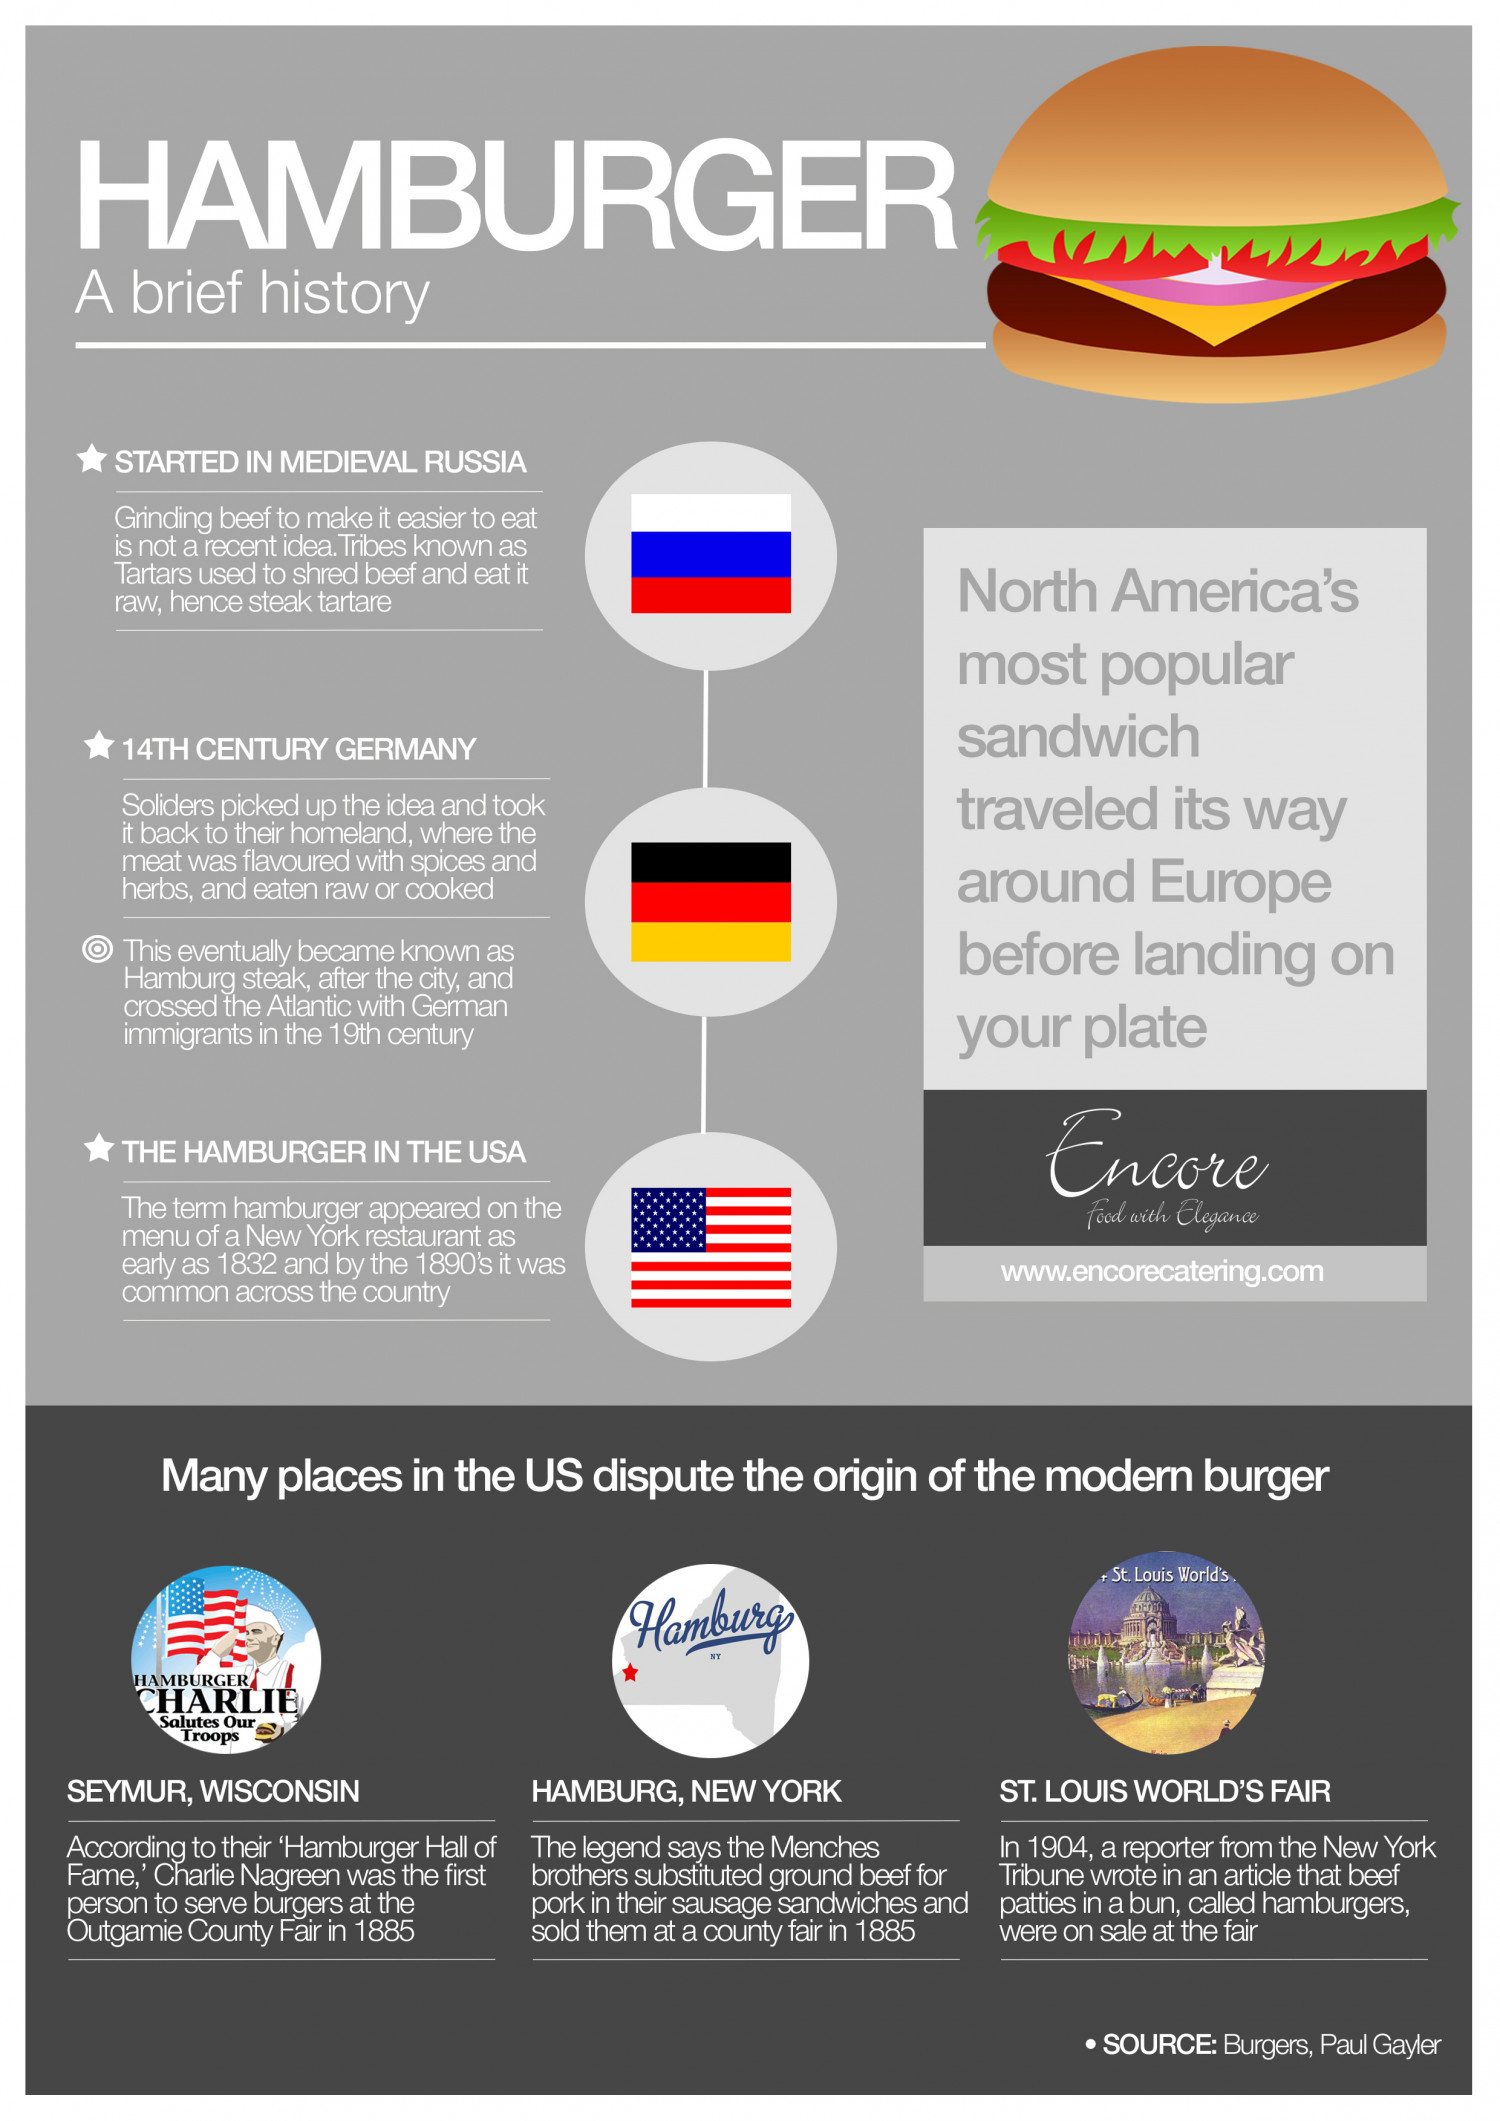 Hamburger, a brief history Infographic